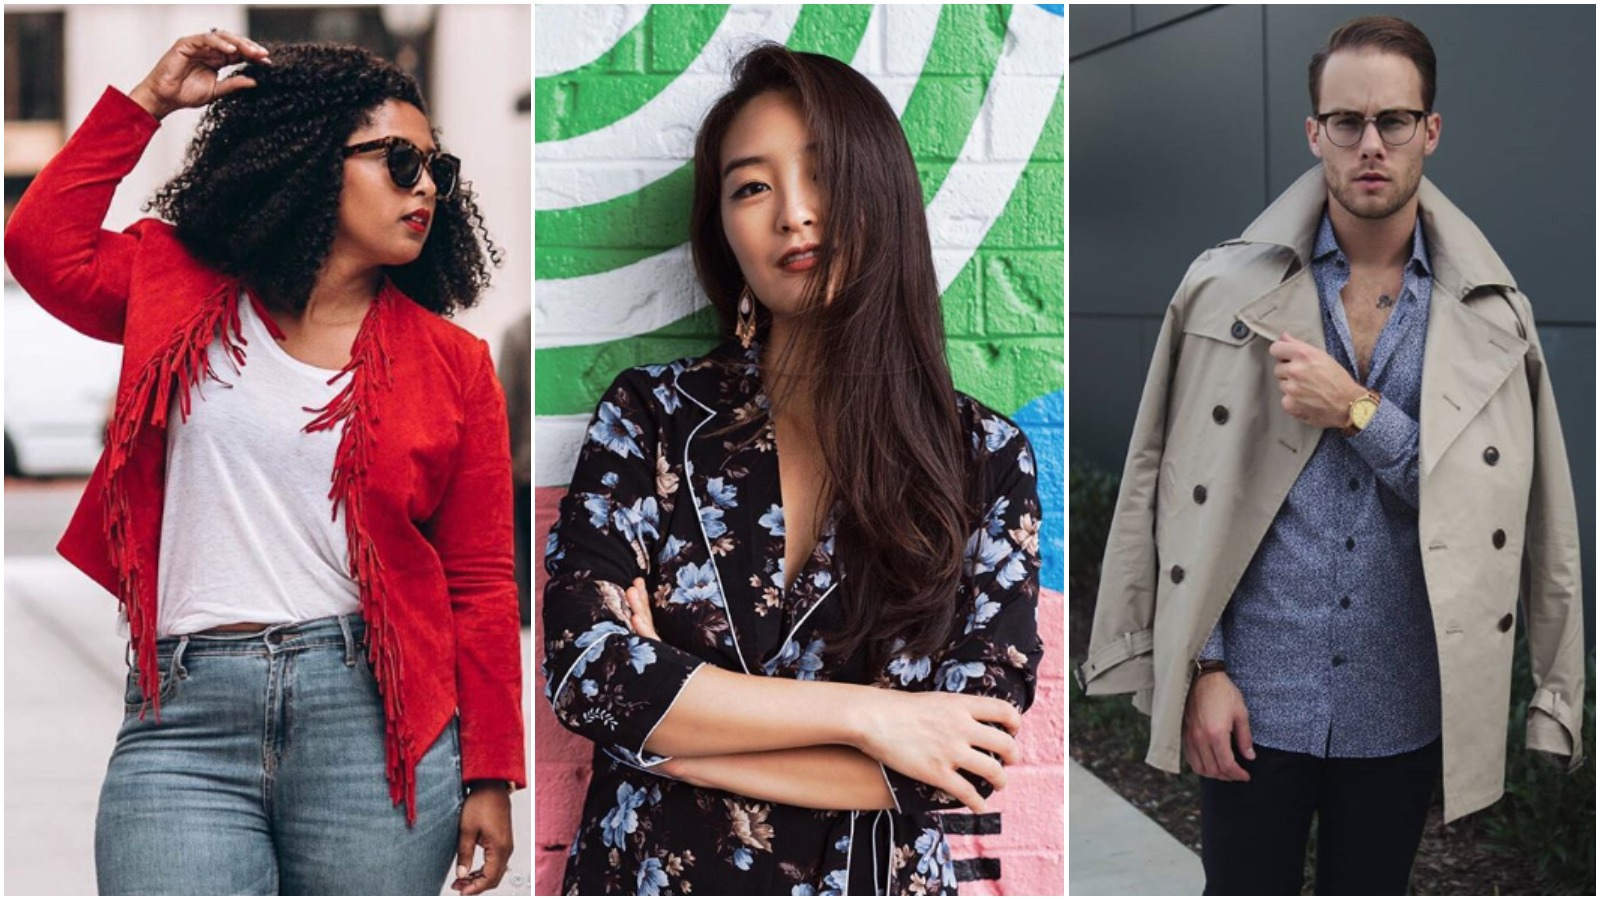 Fall is finally here! Time to put away your linens and switch to sweaters and layers. We caught up with some of D.C.'s favorite fashion Instagrammers and bloggers to check out some of their autumn looks. Here are some to copy right now.{&amp;nbsp;}<p></p>